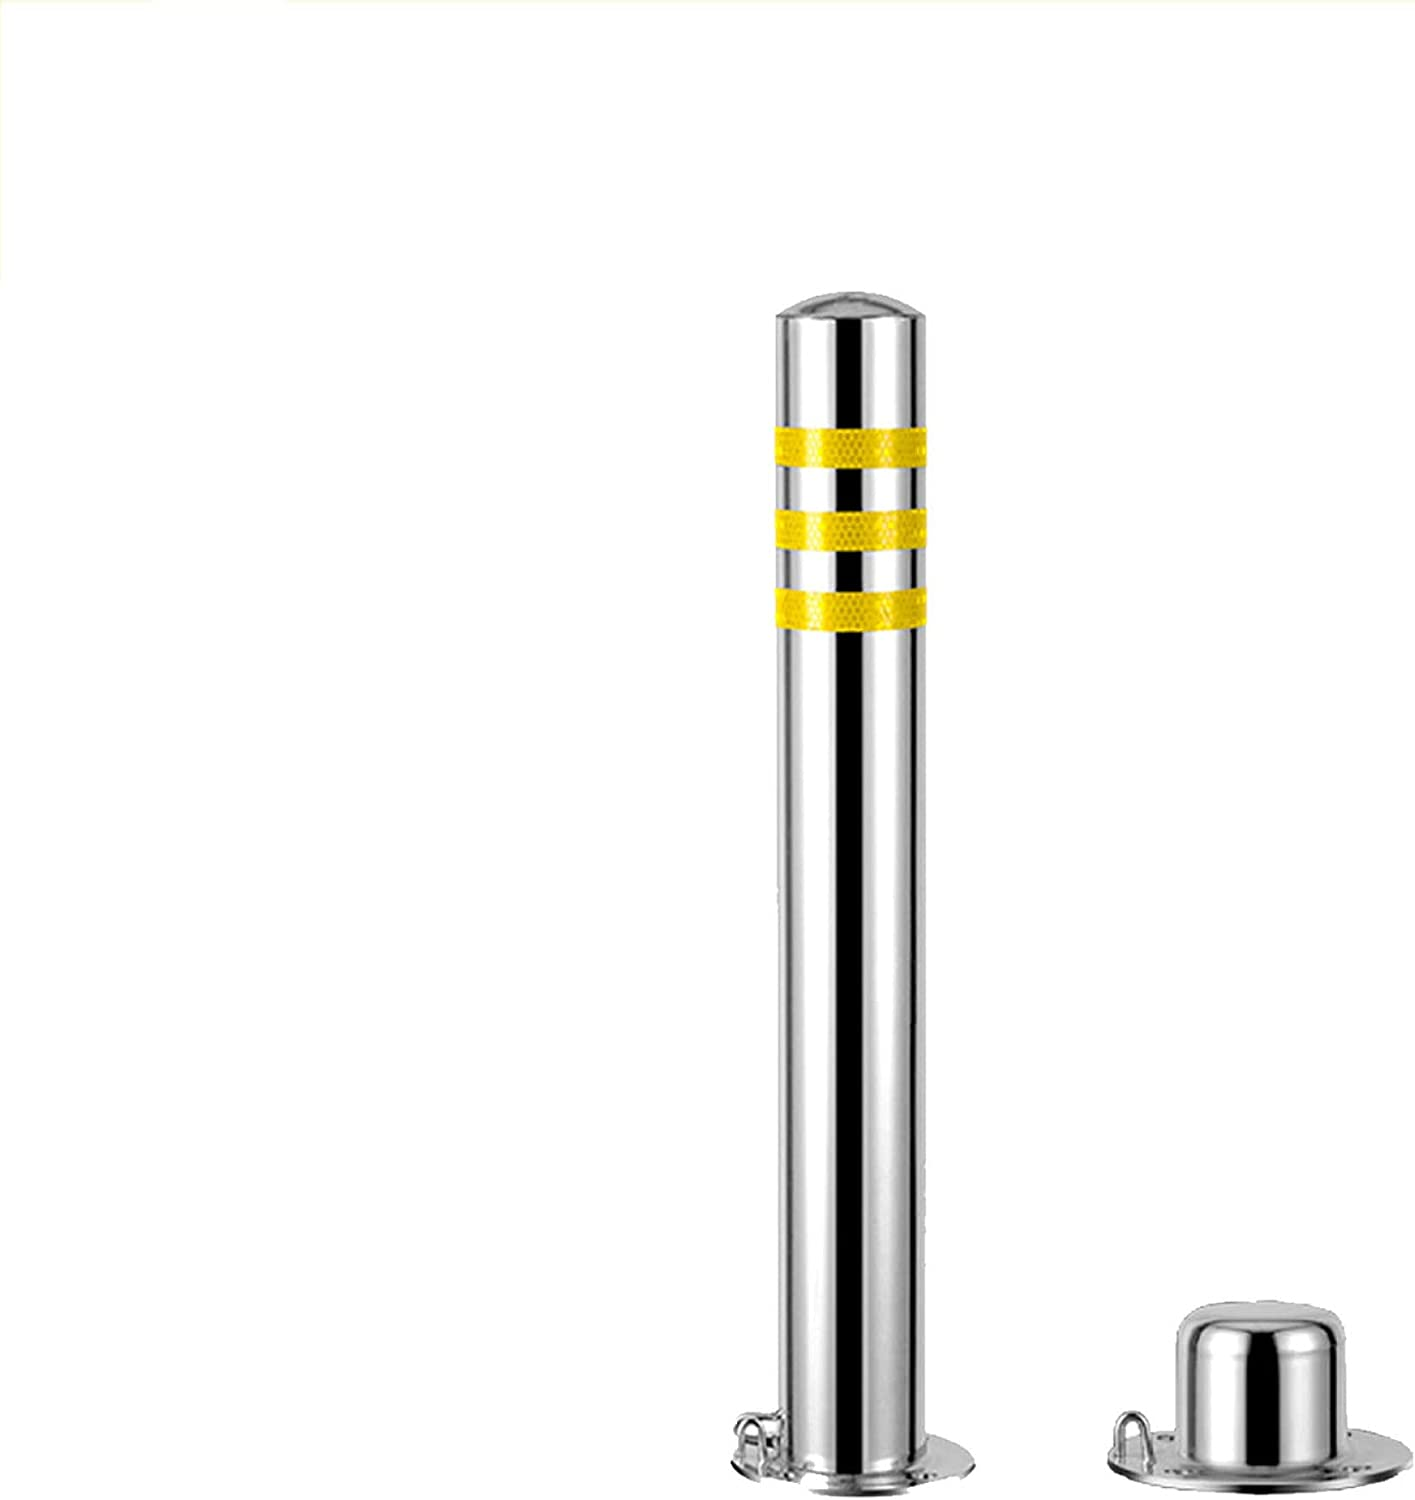 Parking New excellence mail order Column Thickened Anti-Collision Lock Stainless